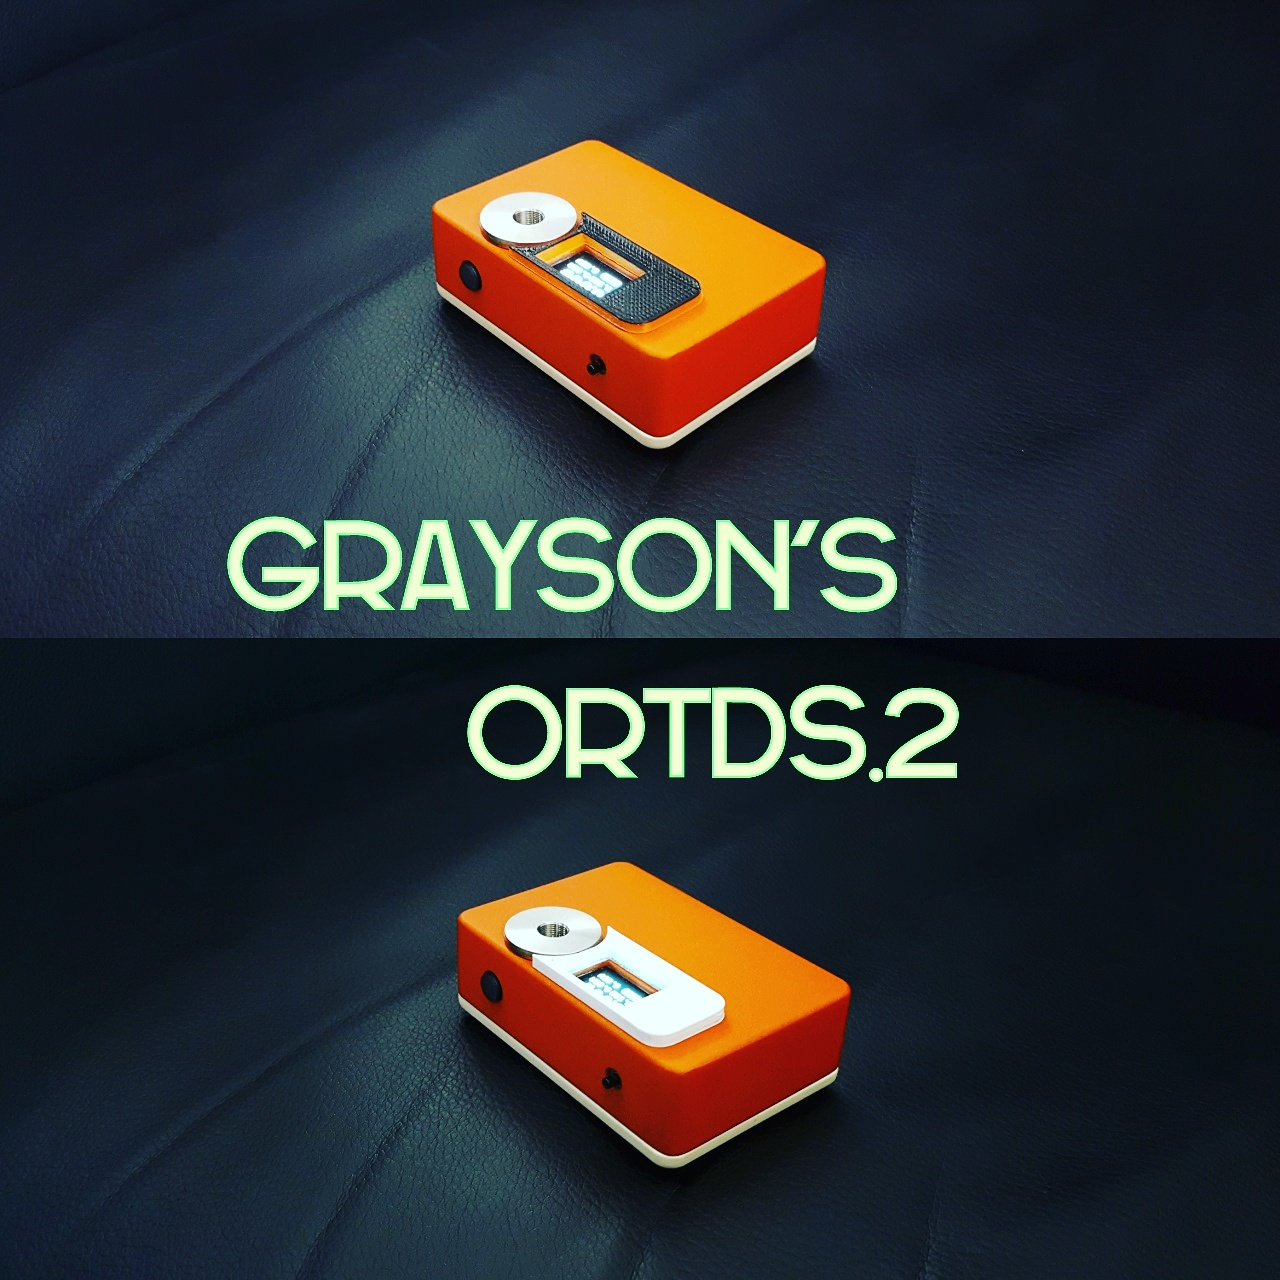 Grayson's ORTDS.2, Orange Amped